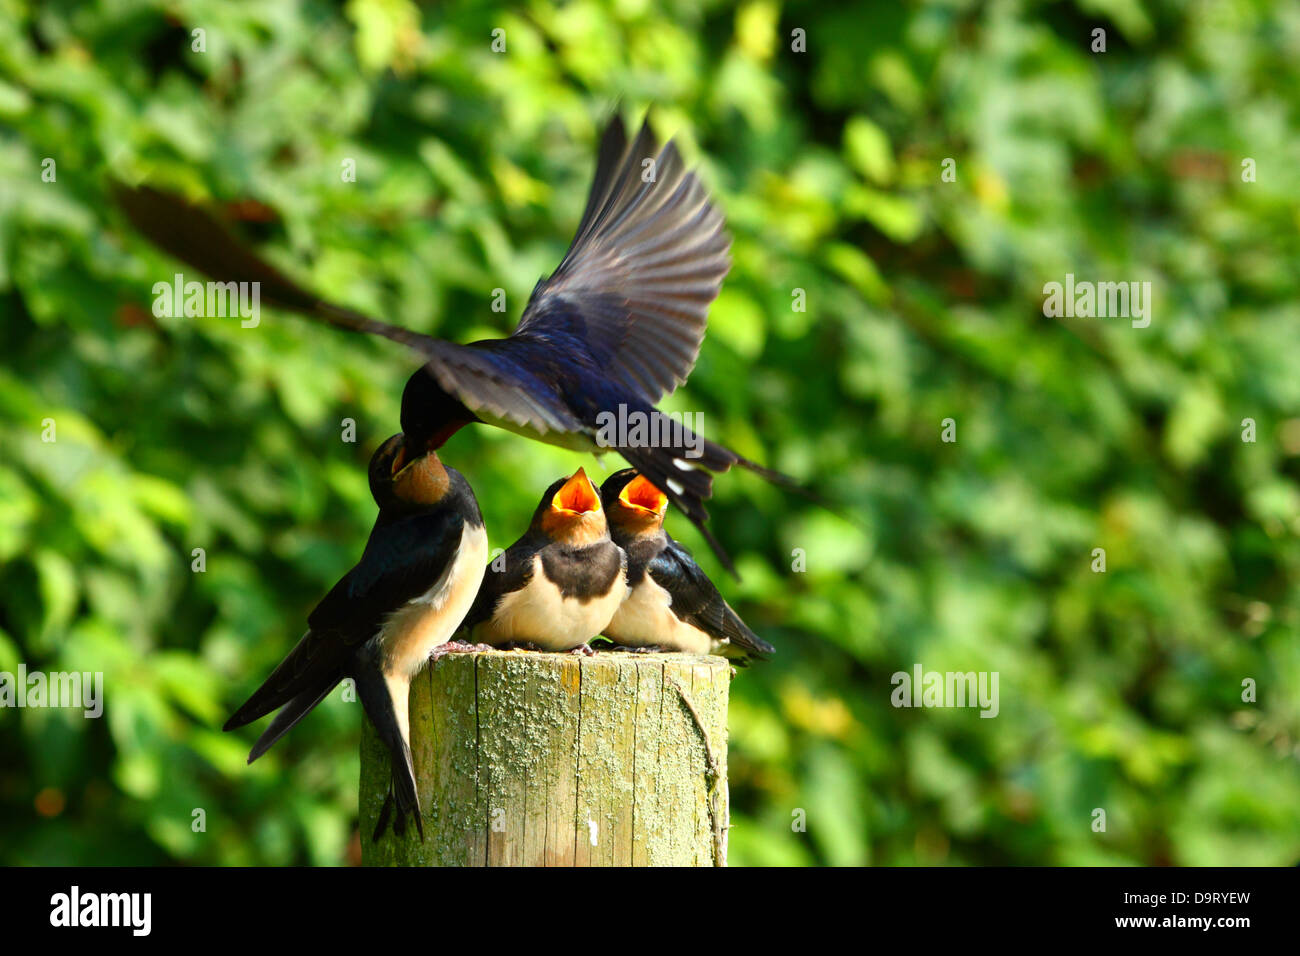 baby swallow being fed by adult swallow - Stock Image